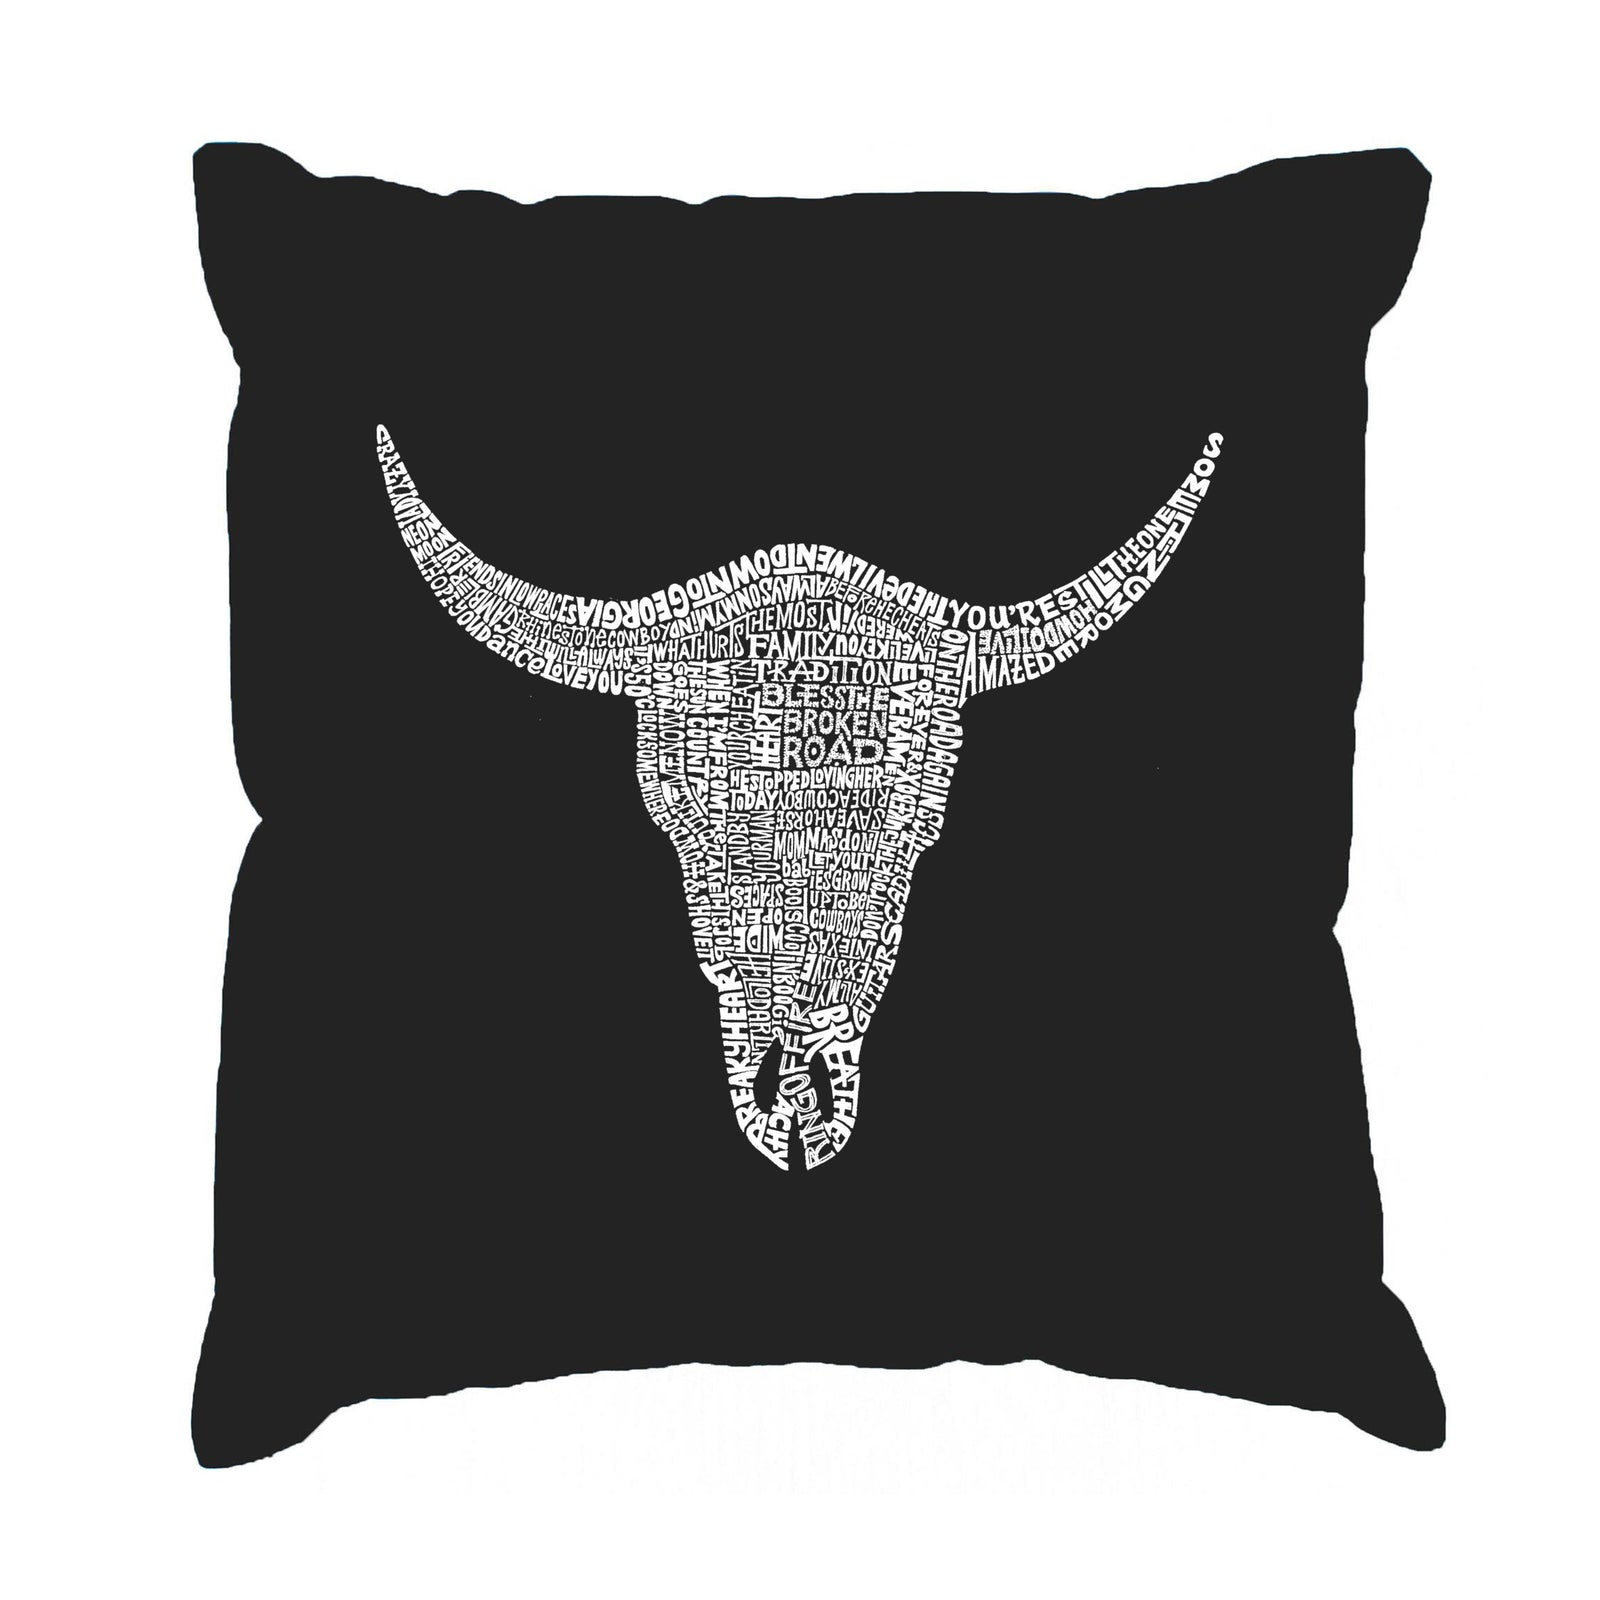 Throw Pillow Cover - COUNTRY MUSIC'S ALL TIME HITS